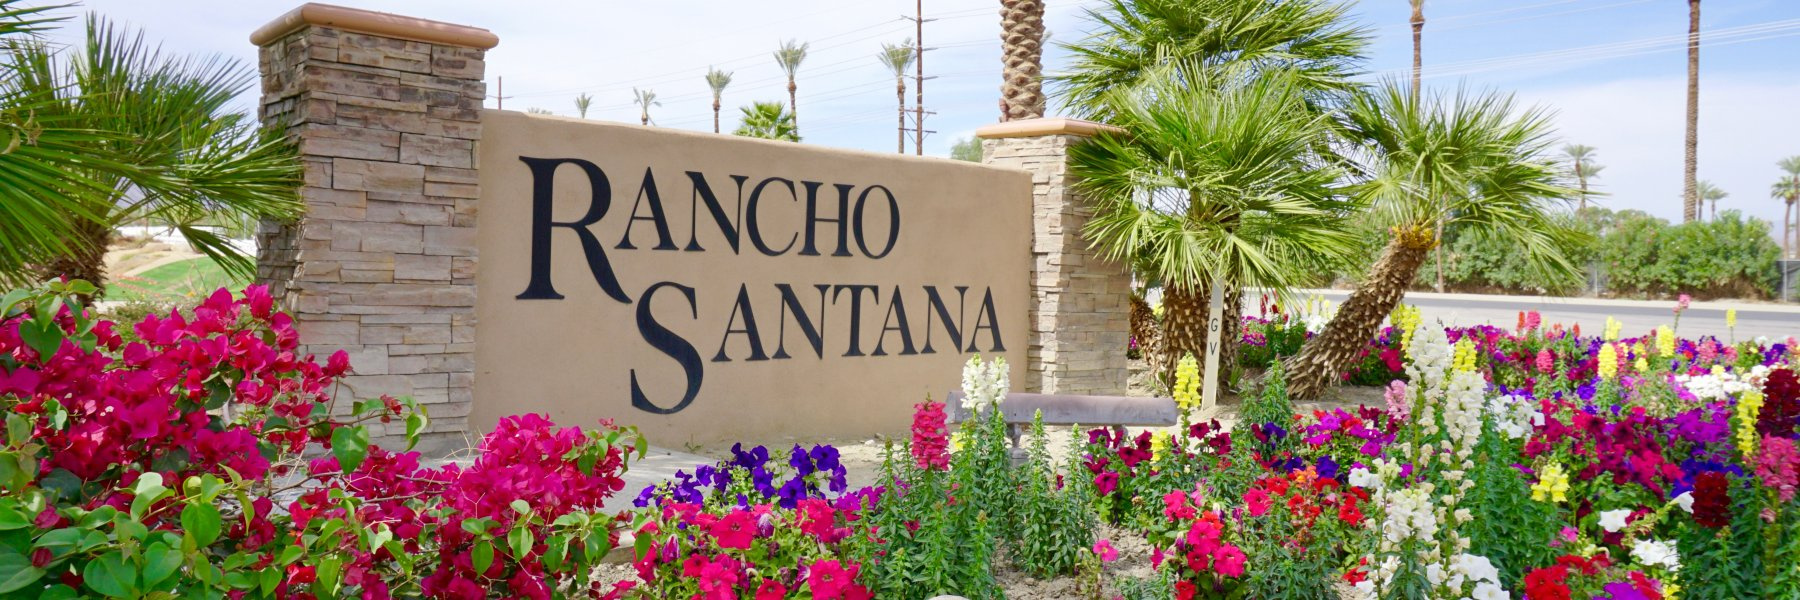 Rancho Santana is a community of homes in La Quinta California